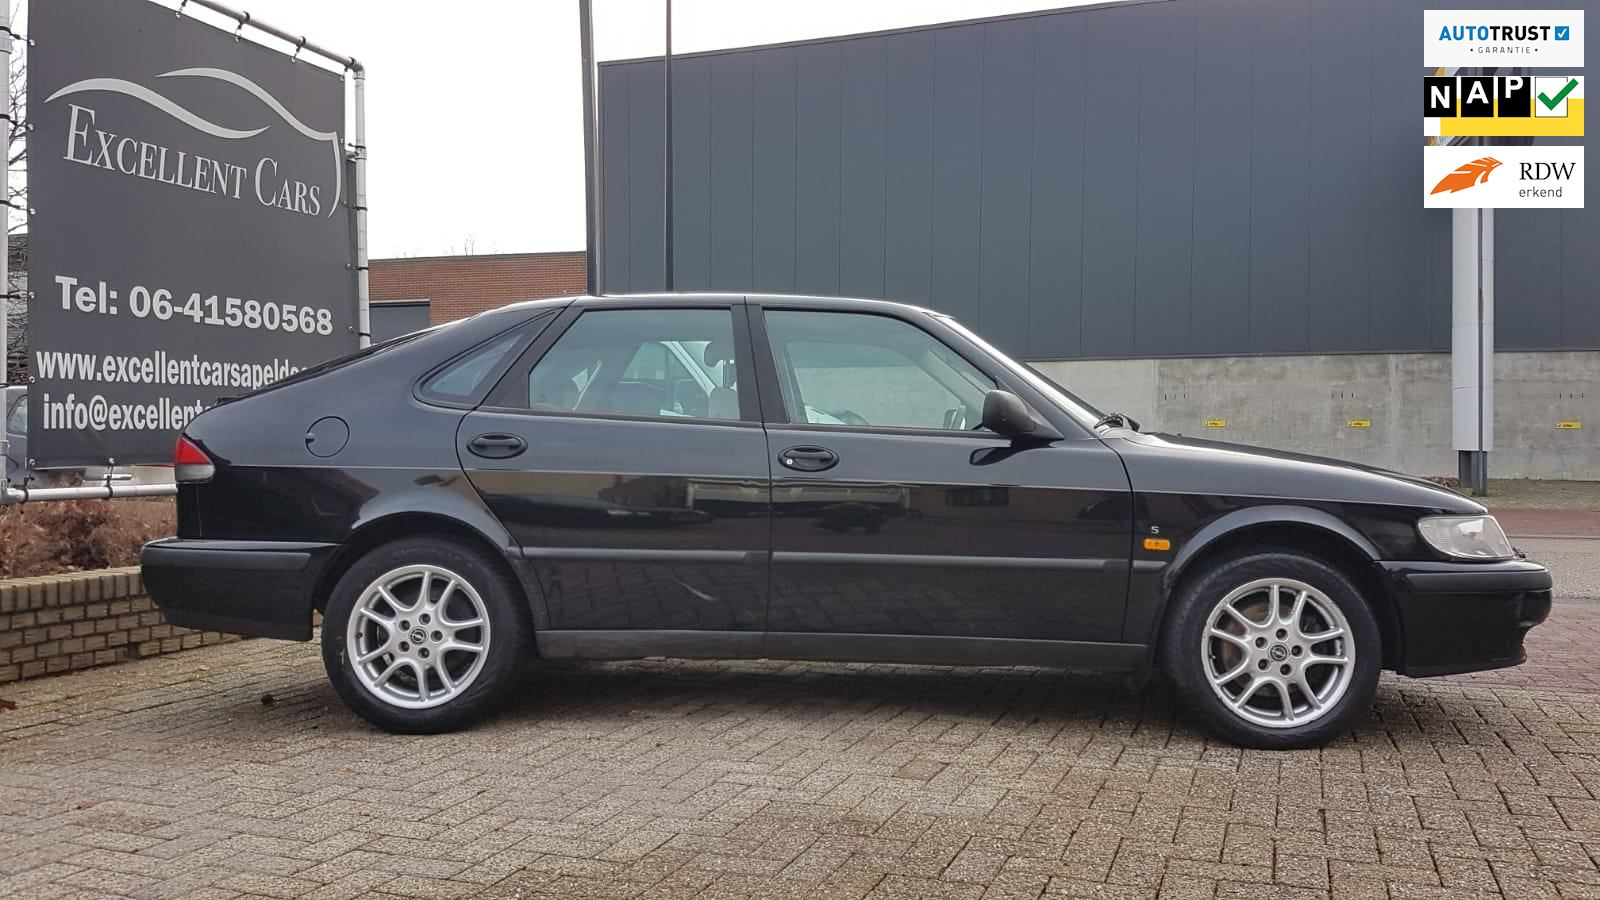 Saab 9-3 occasion - Excellent Cars